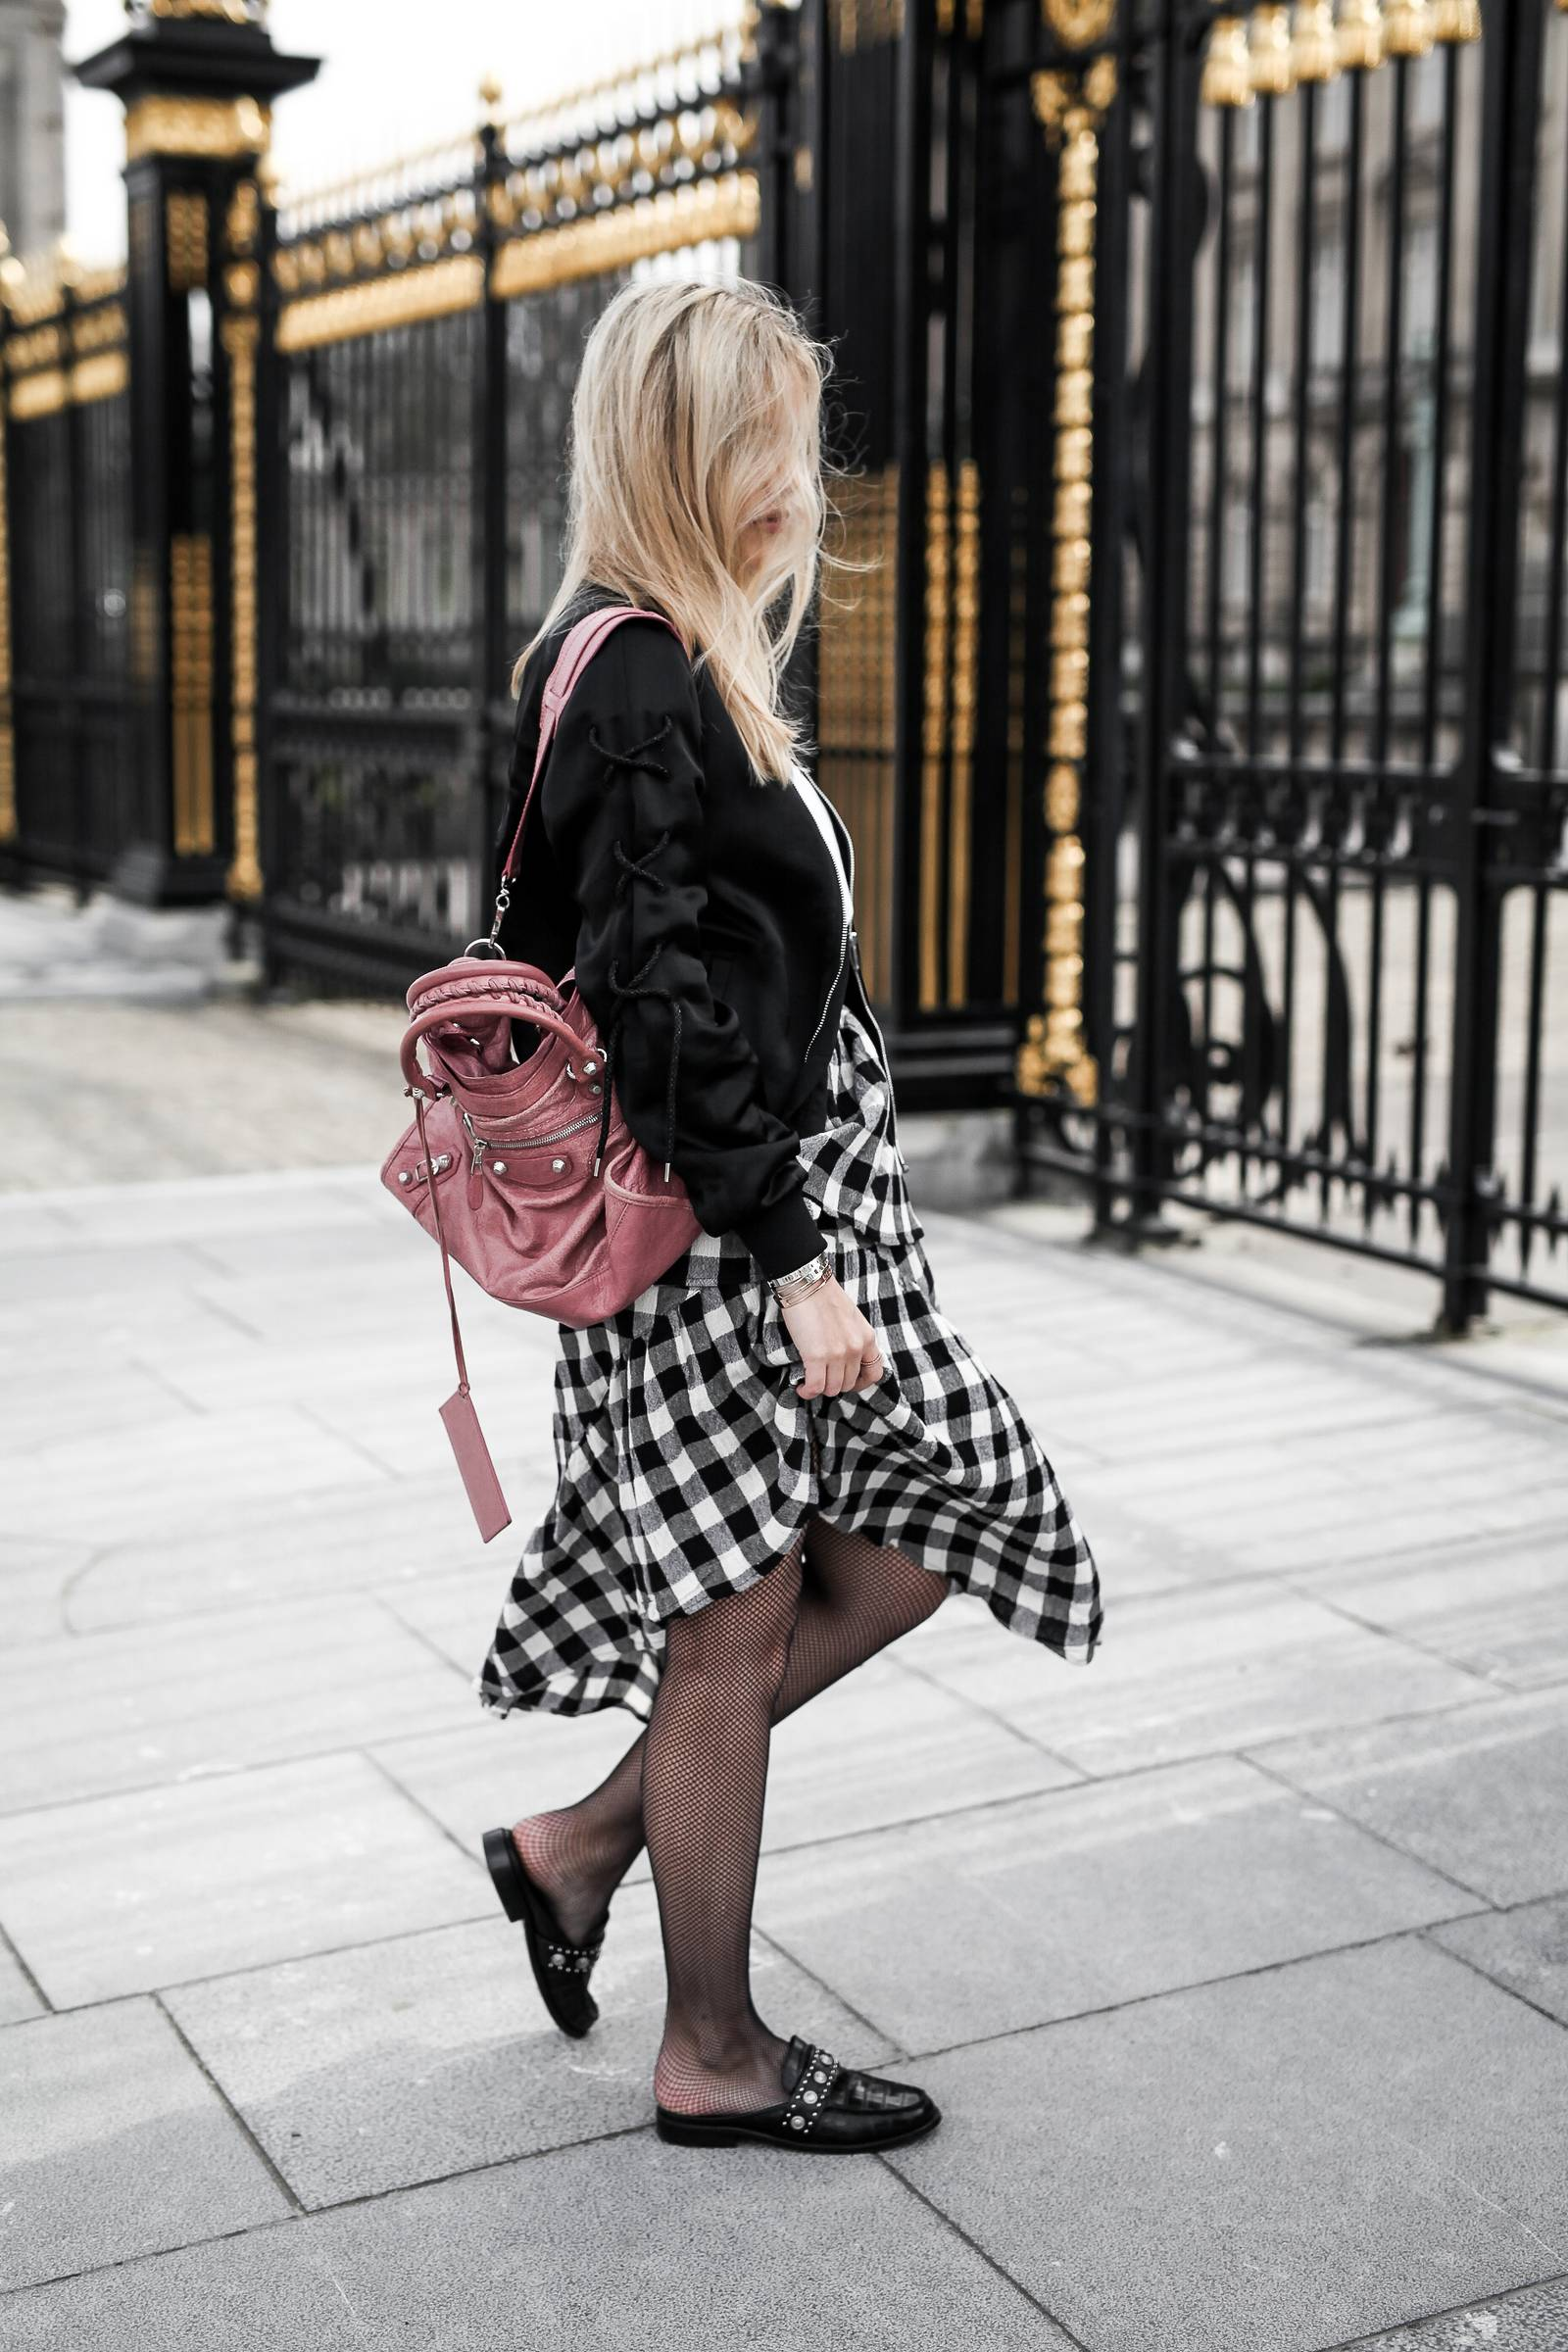 Vichy skirt and black bomber